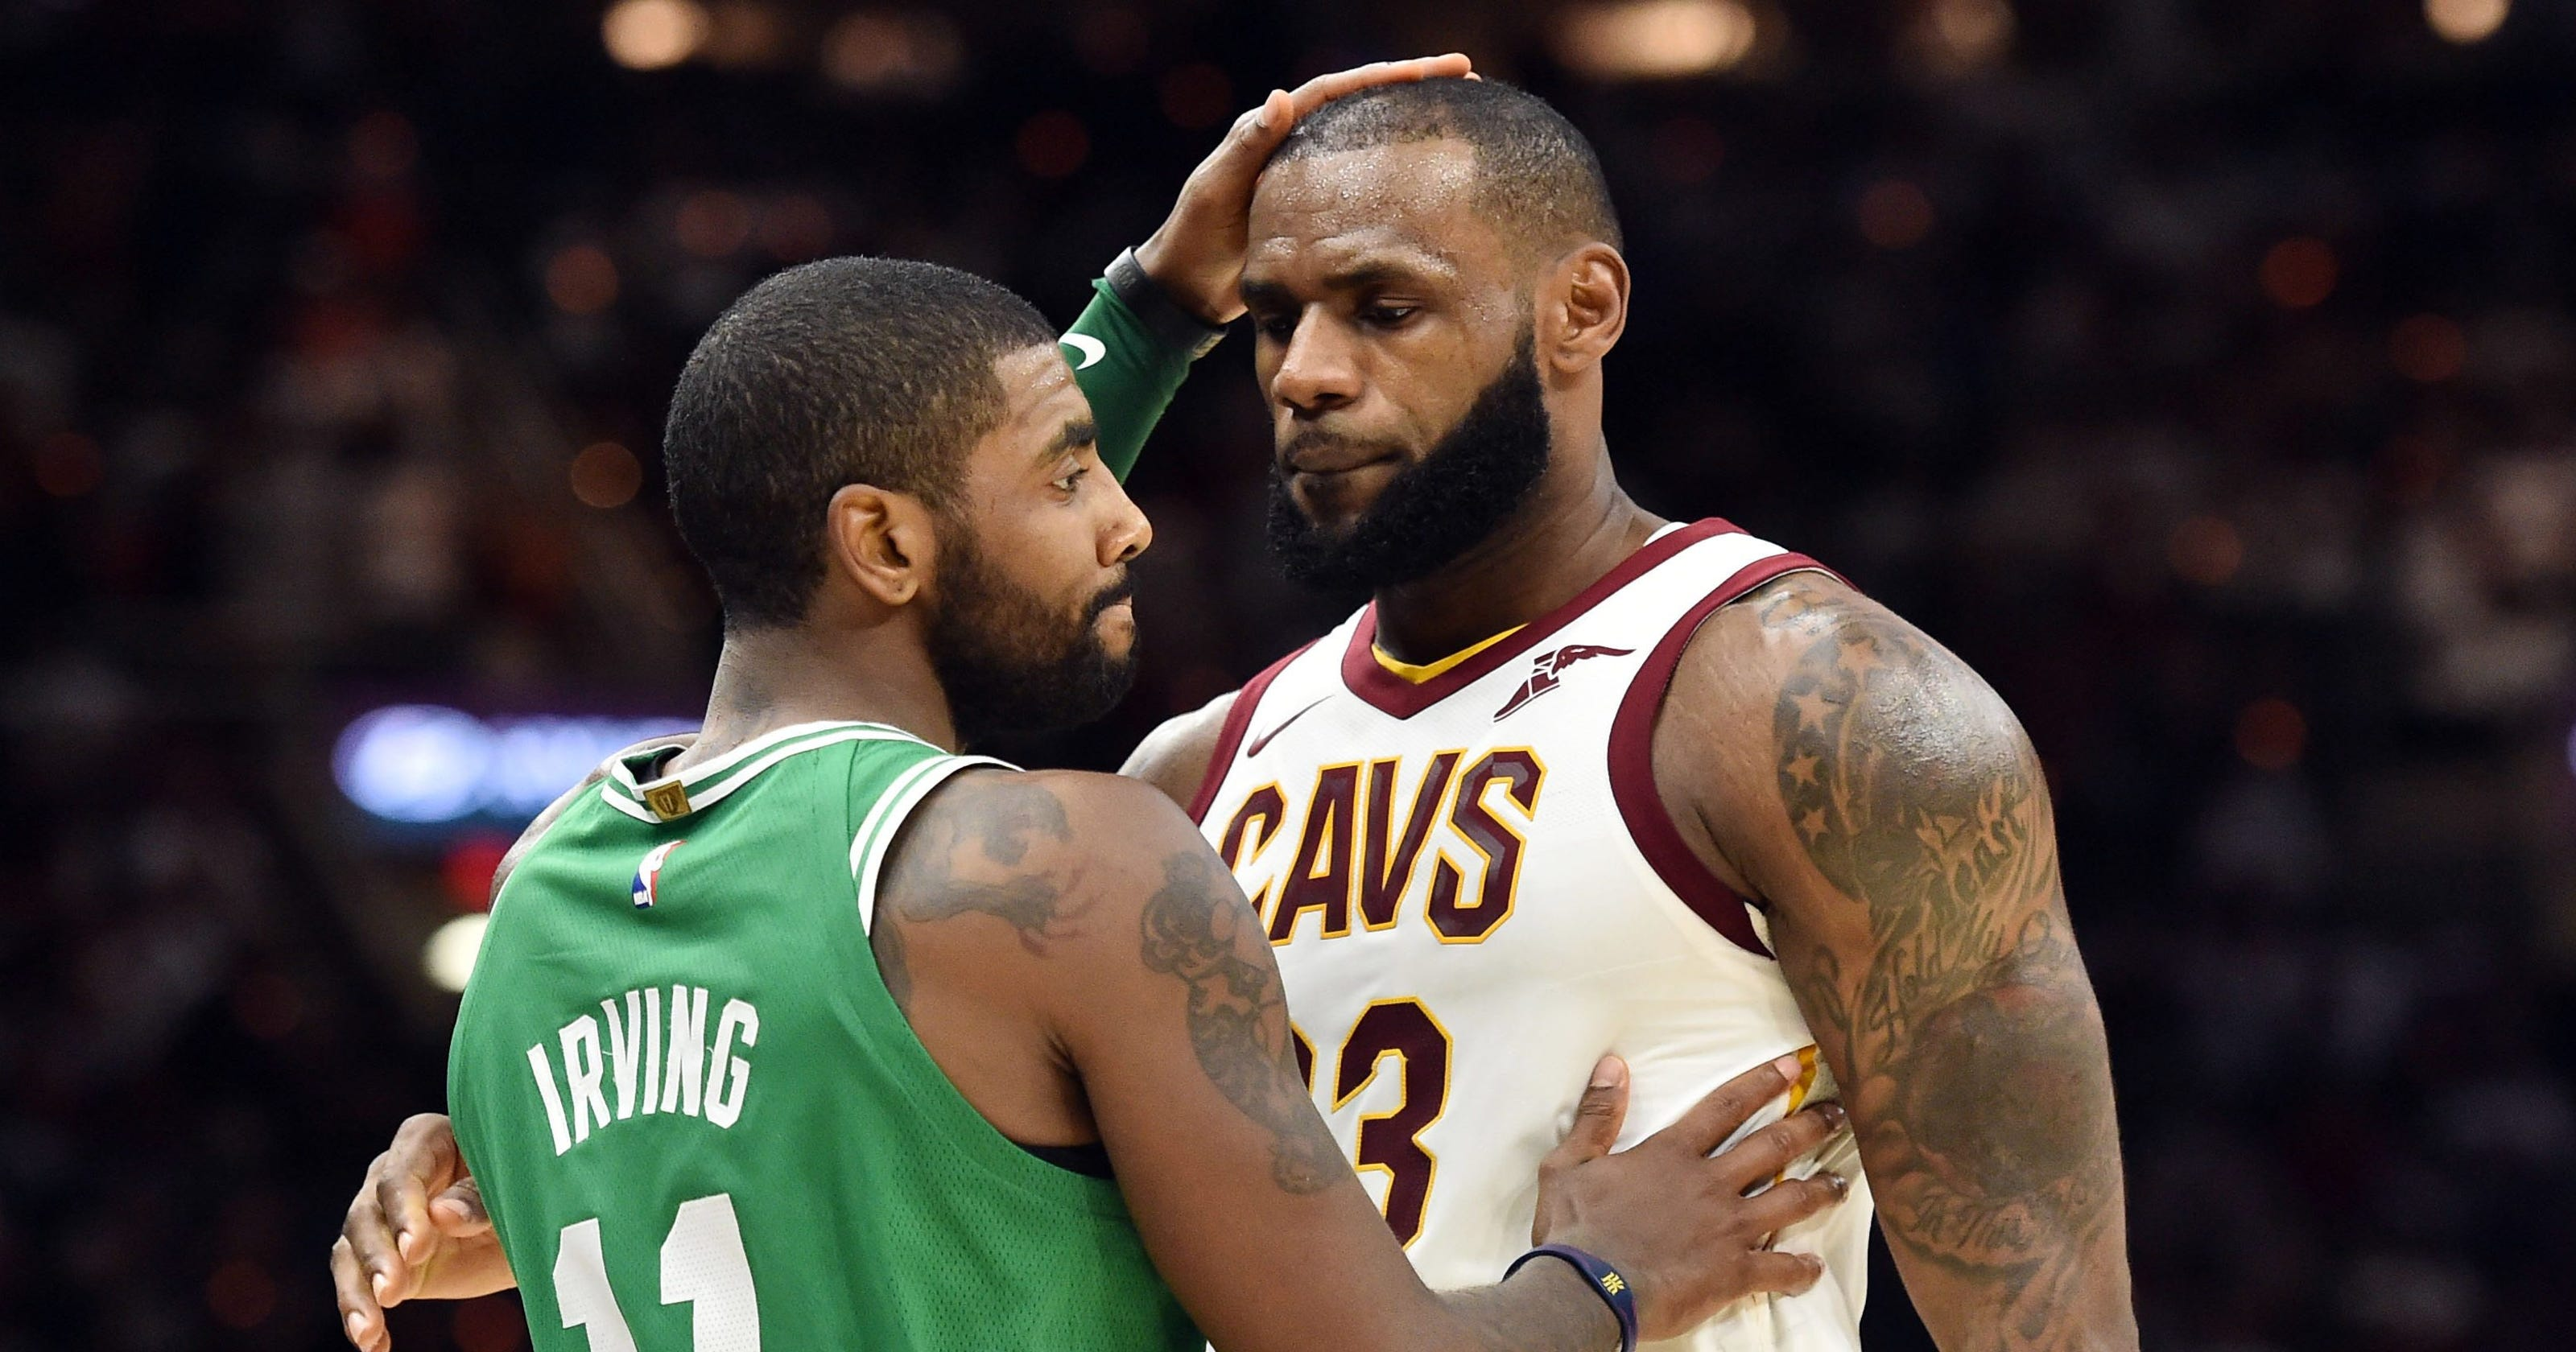 new style 81d52 e8504 LeBron James says he told Cavaliers GM not to trade Kyrie Irving